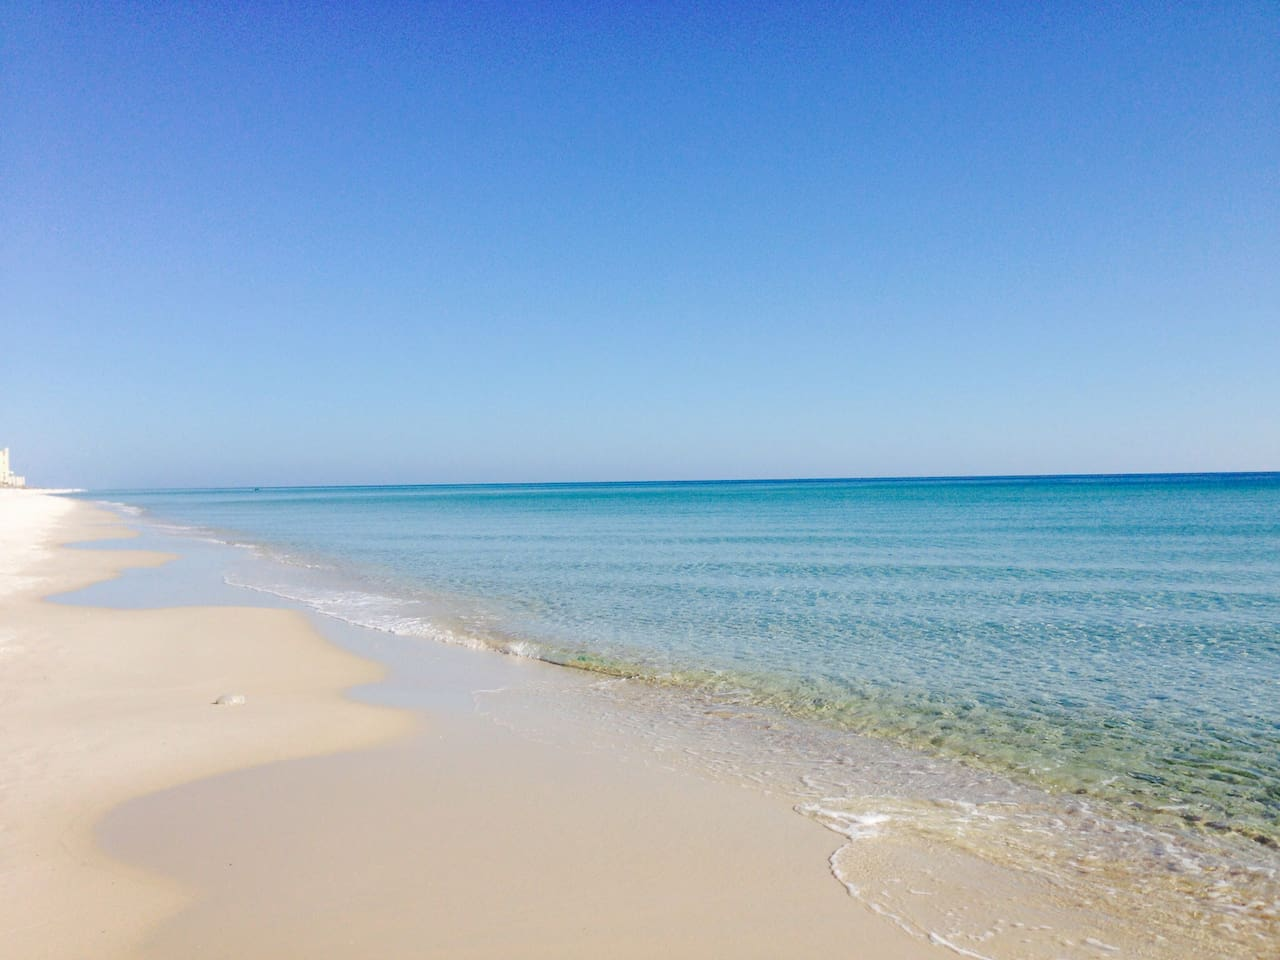 Sugar white sand and blue/green waters... Welcome to Perdido!